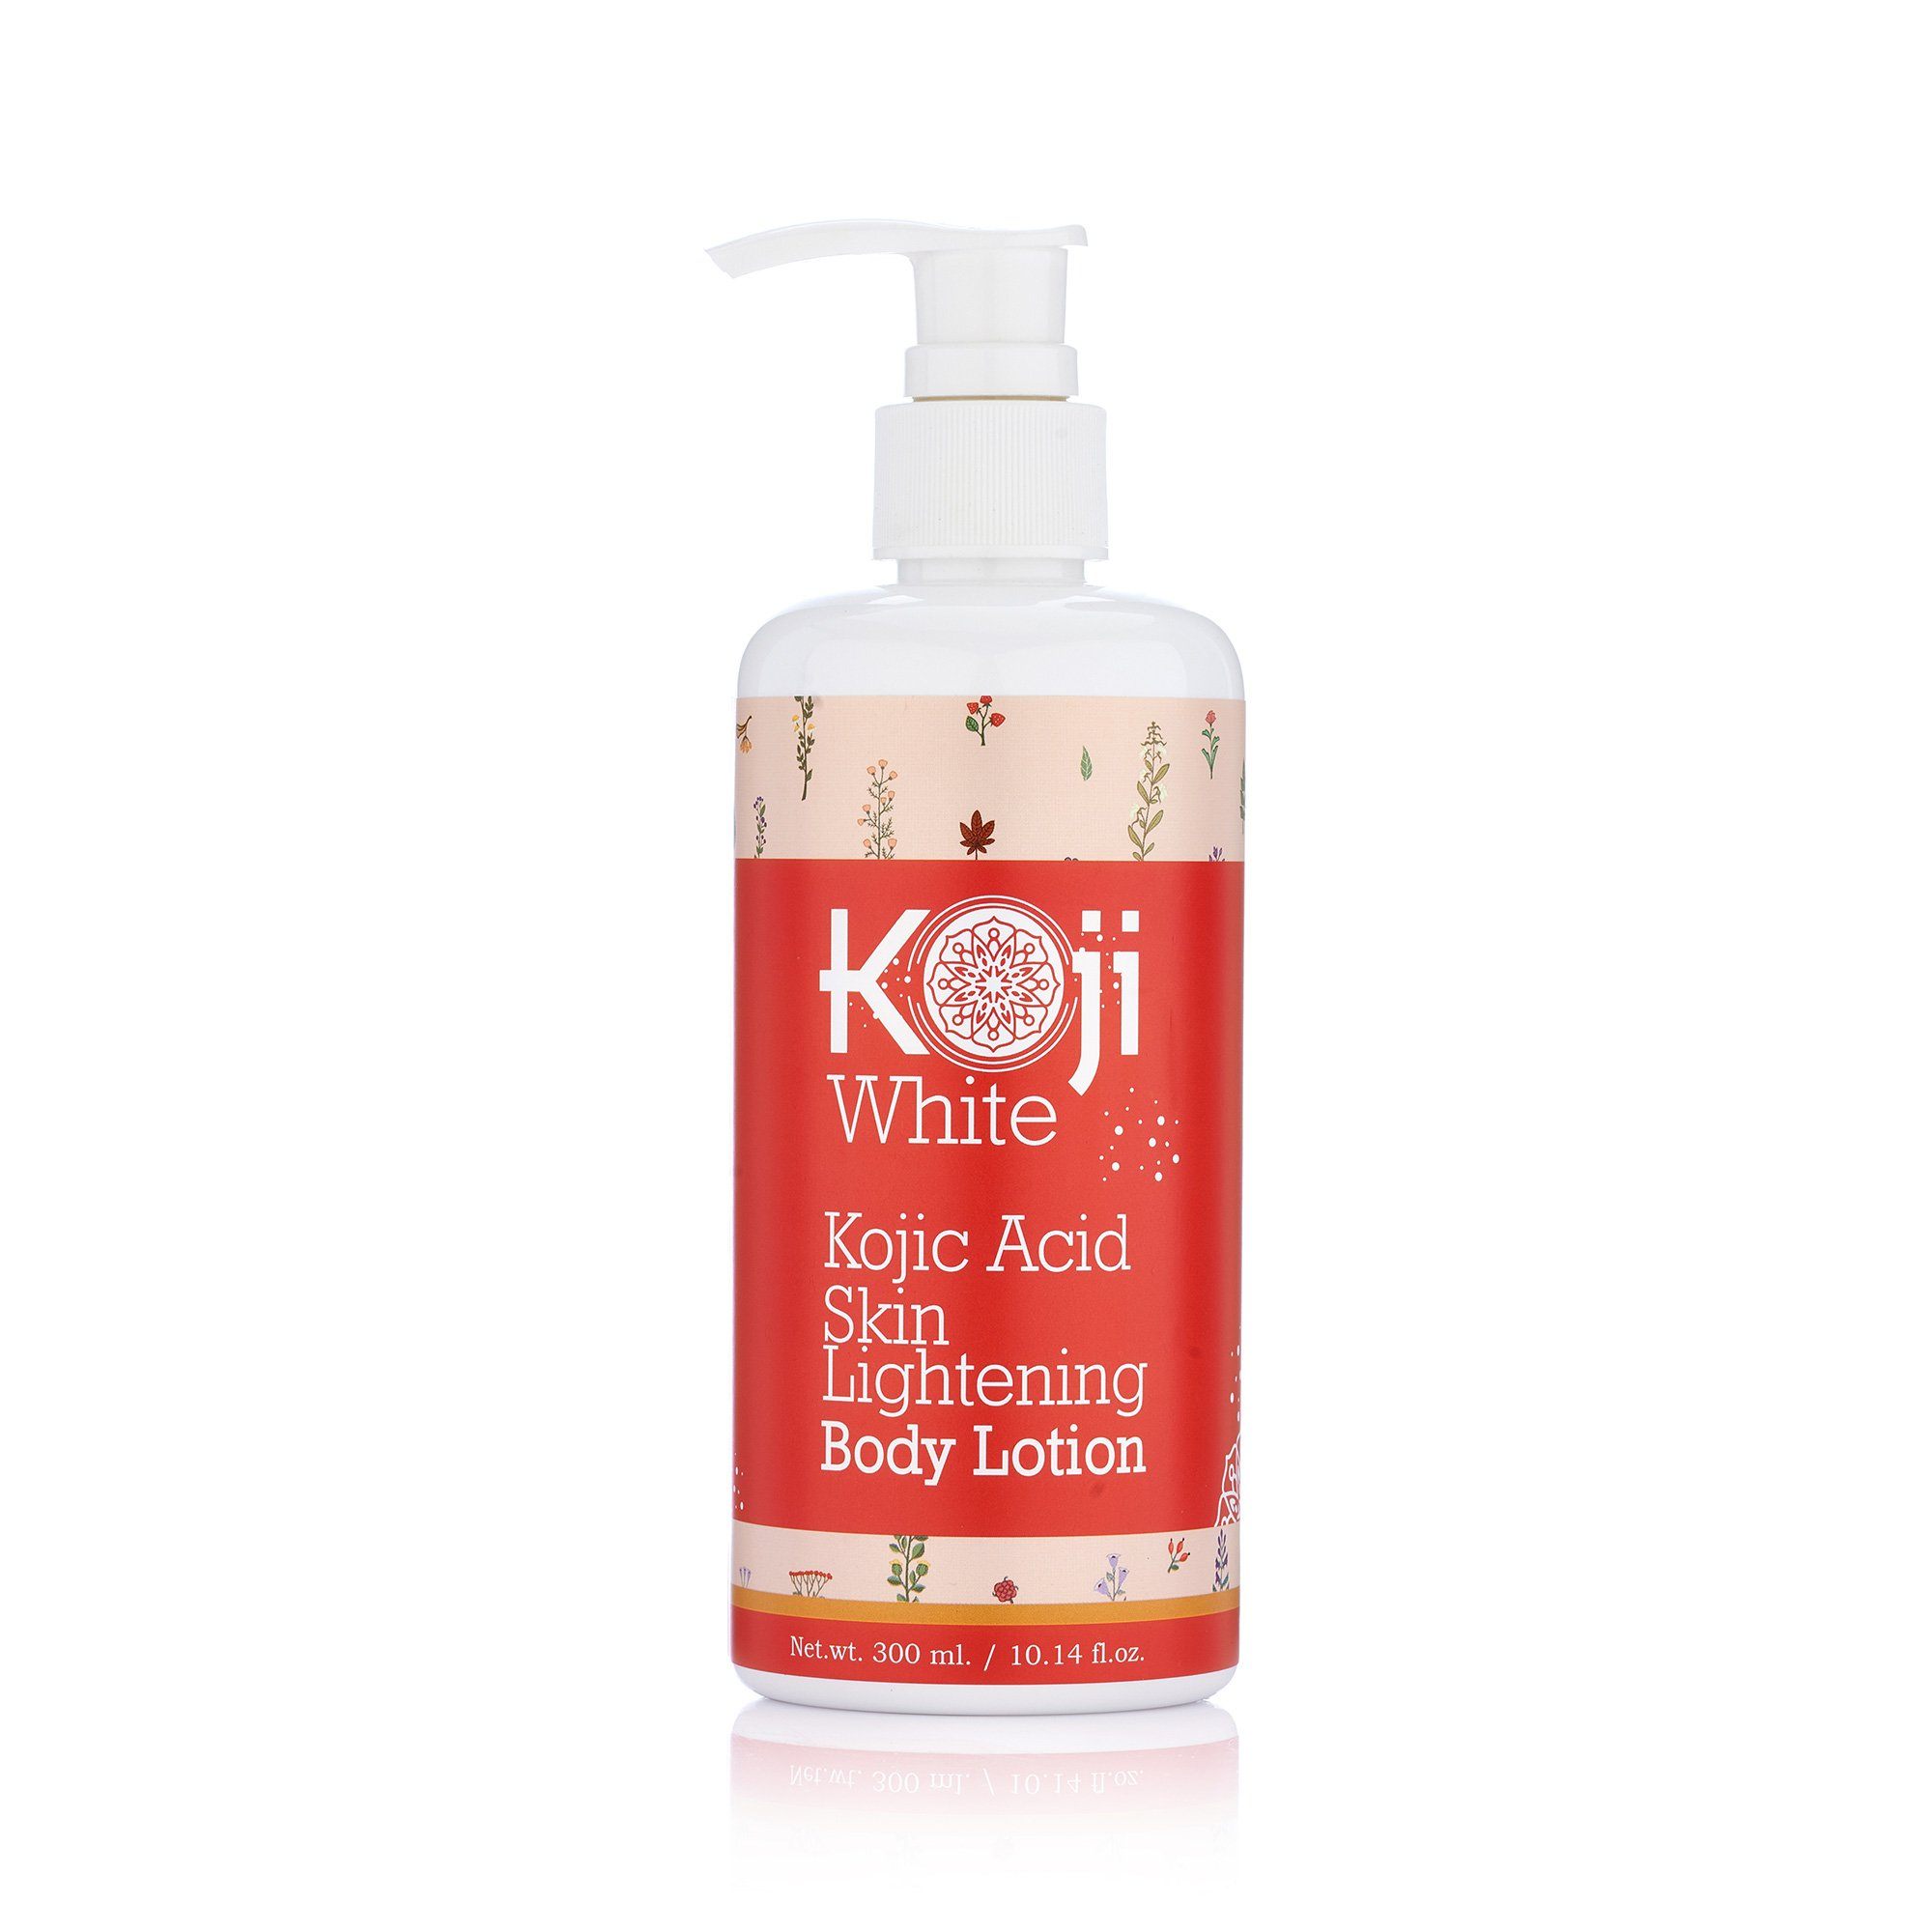 Pure Kojic Acid Skin Lightening Body Lotion – Natural Moisturizer & Uneven Skin Tone For Reduce